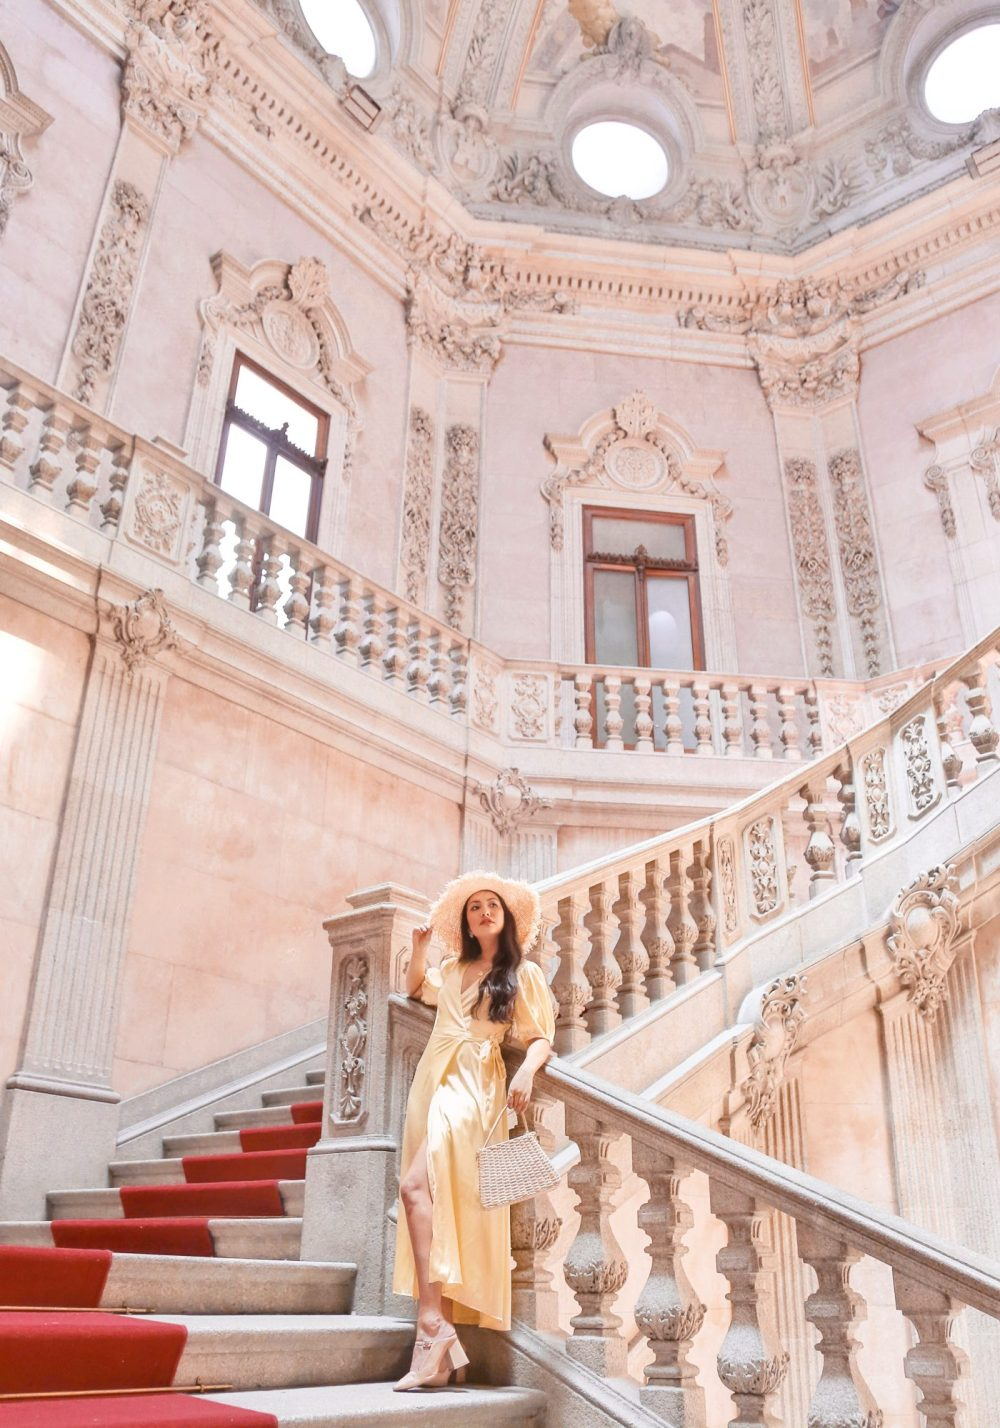 Palacio-da-Bolsa-Instagram-Porto-Portugal-Guide-Things-to-Do-1-portrait